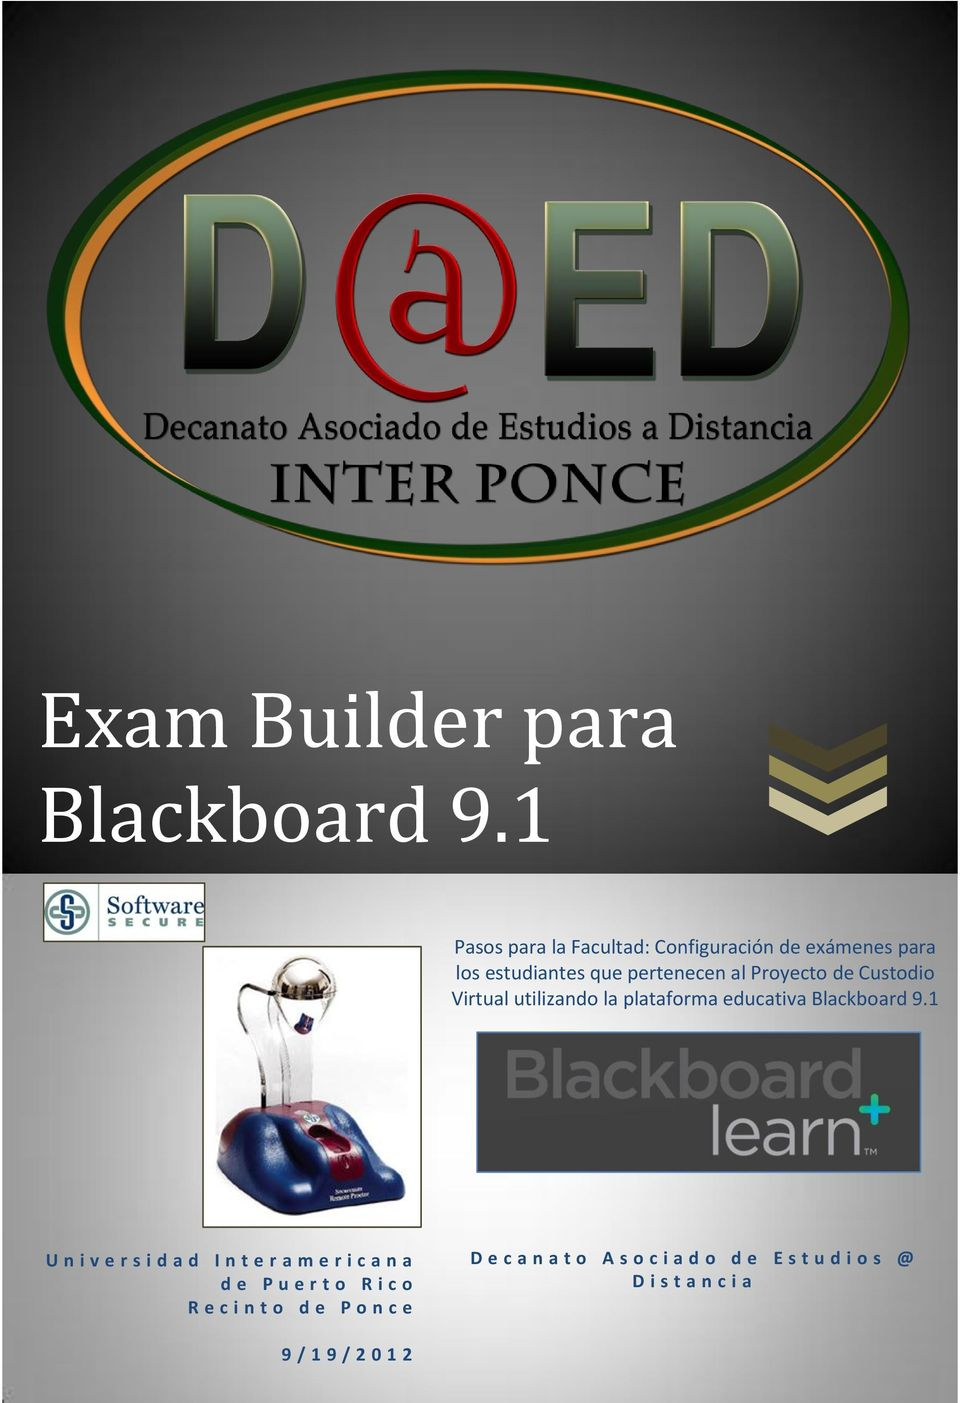 Proyecto de Custodio Virtual utilizando la plataforma educativa Blackboard 9.